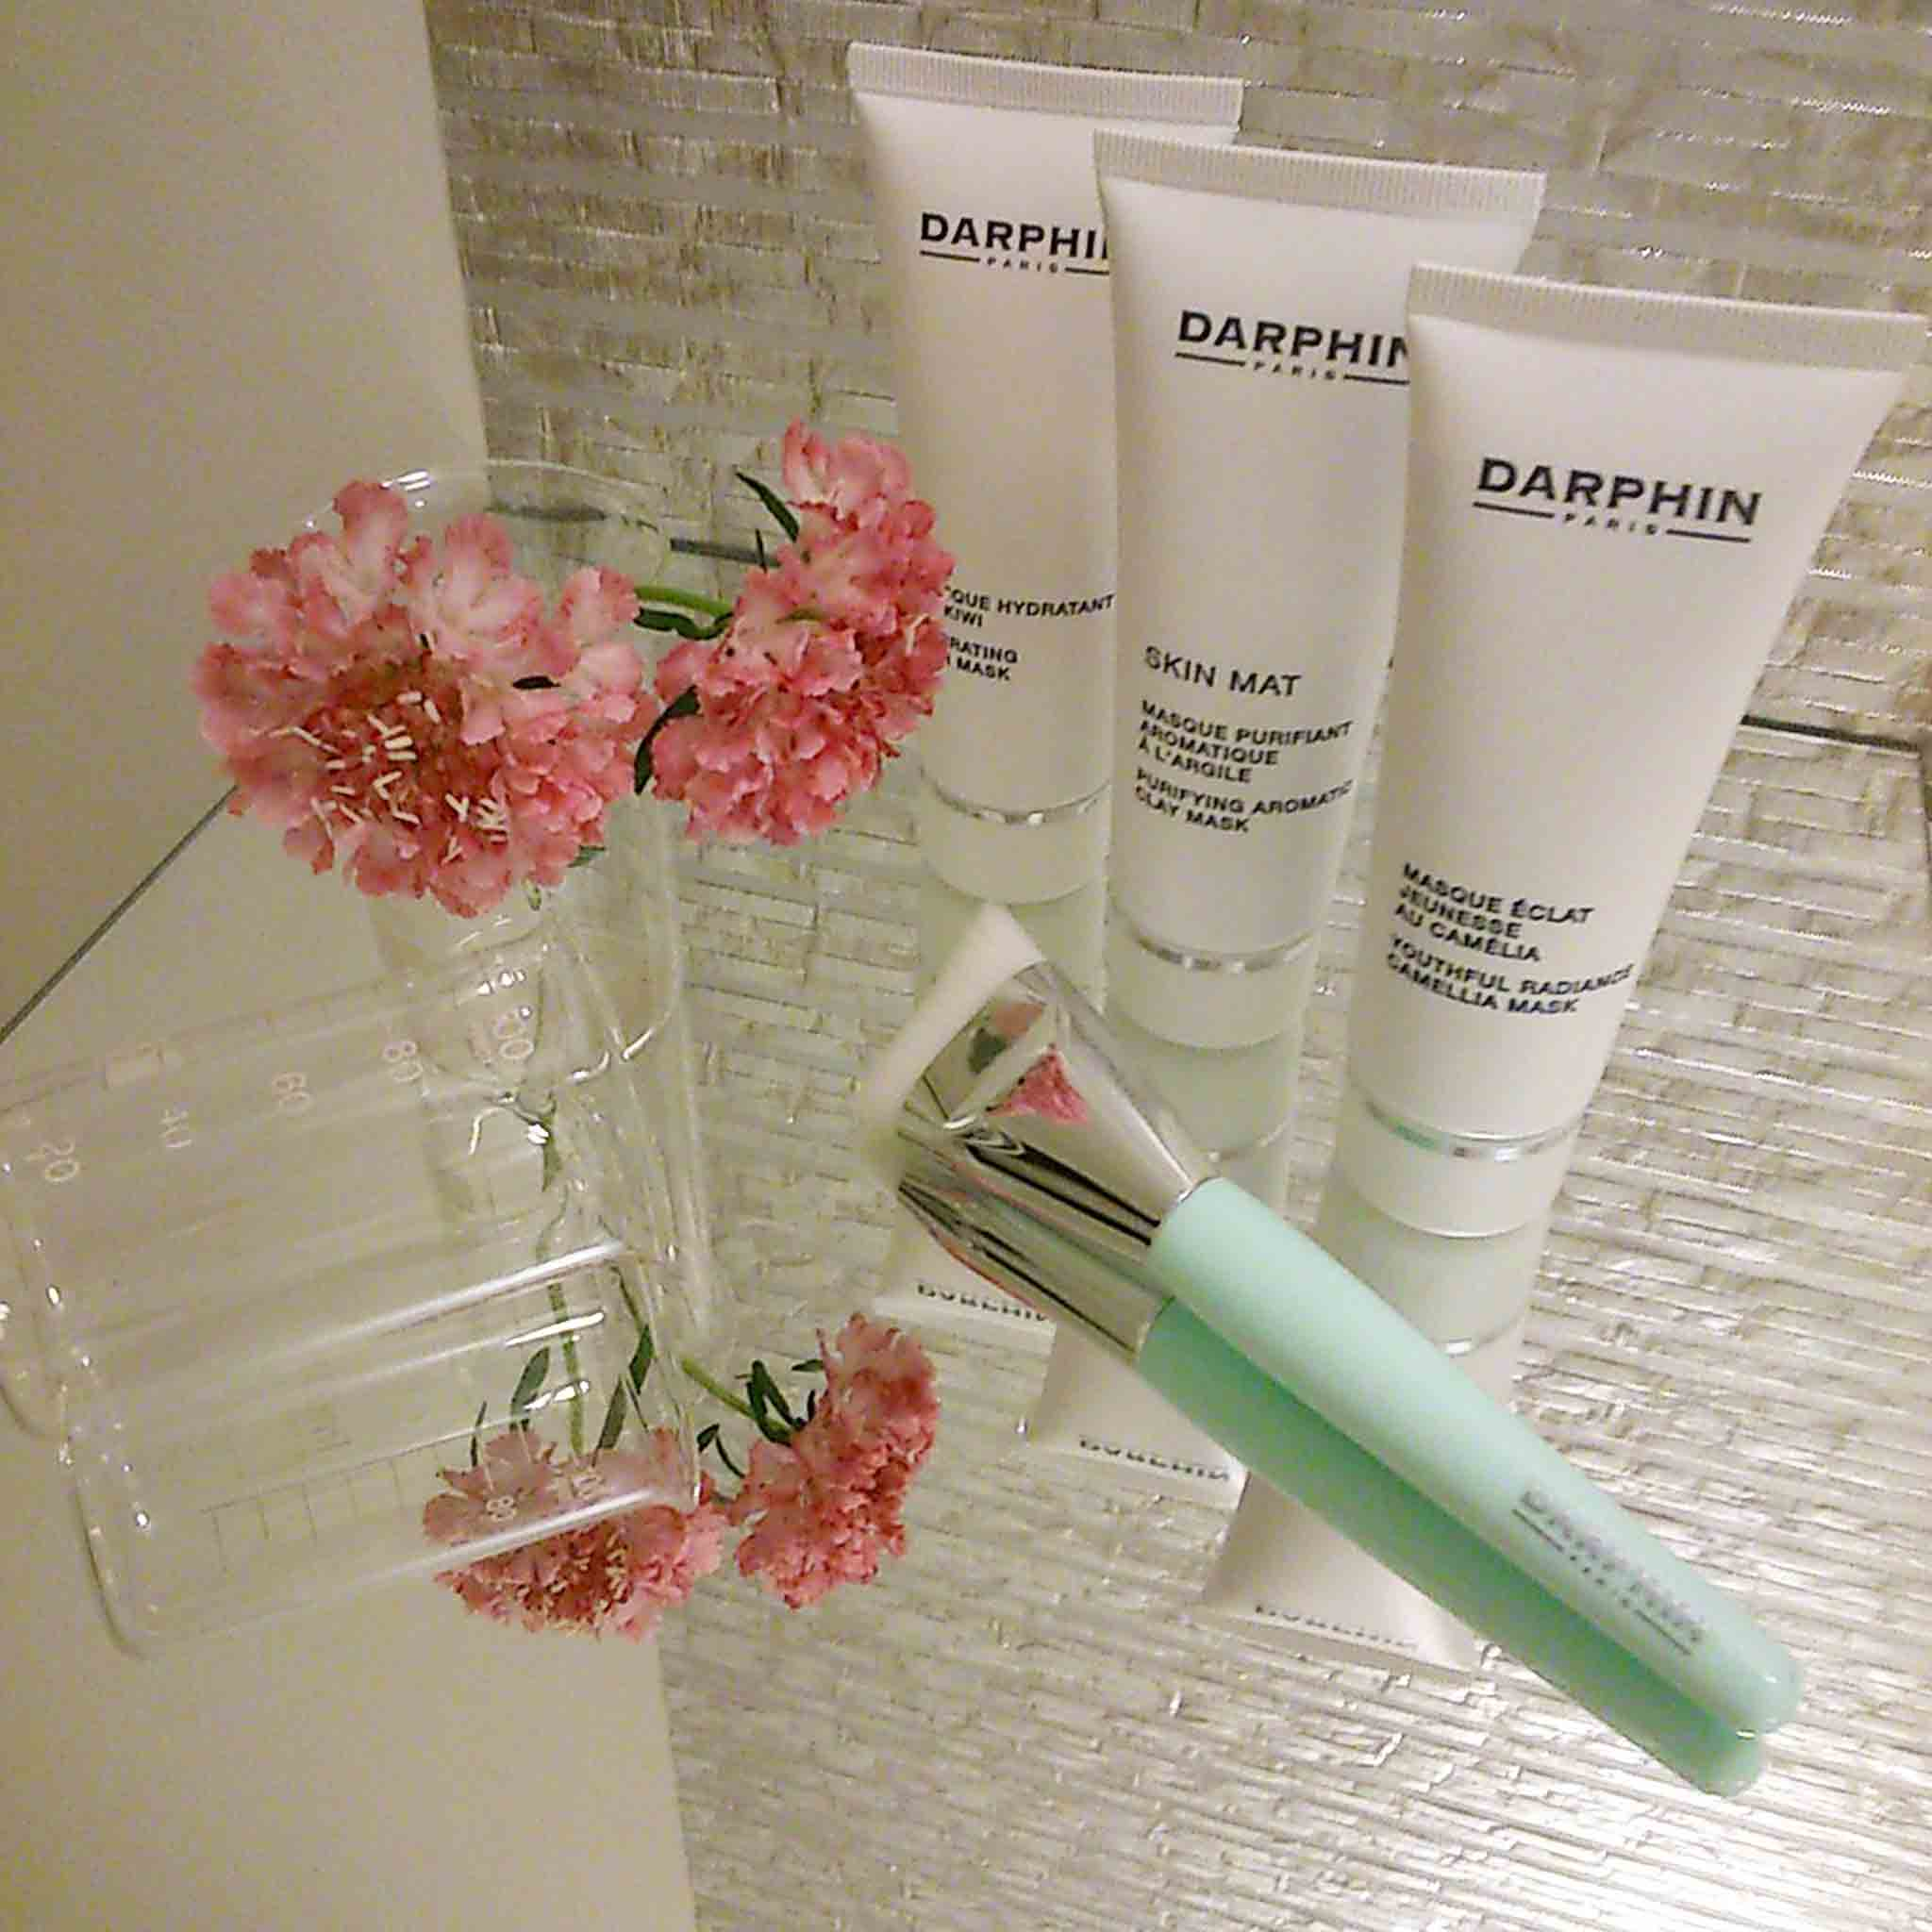 Youthful Radiance Camellia Mask